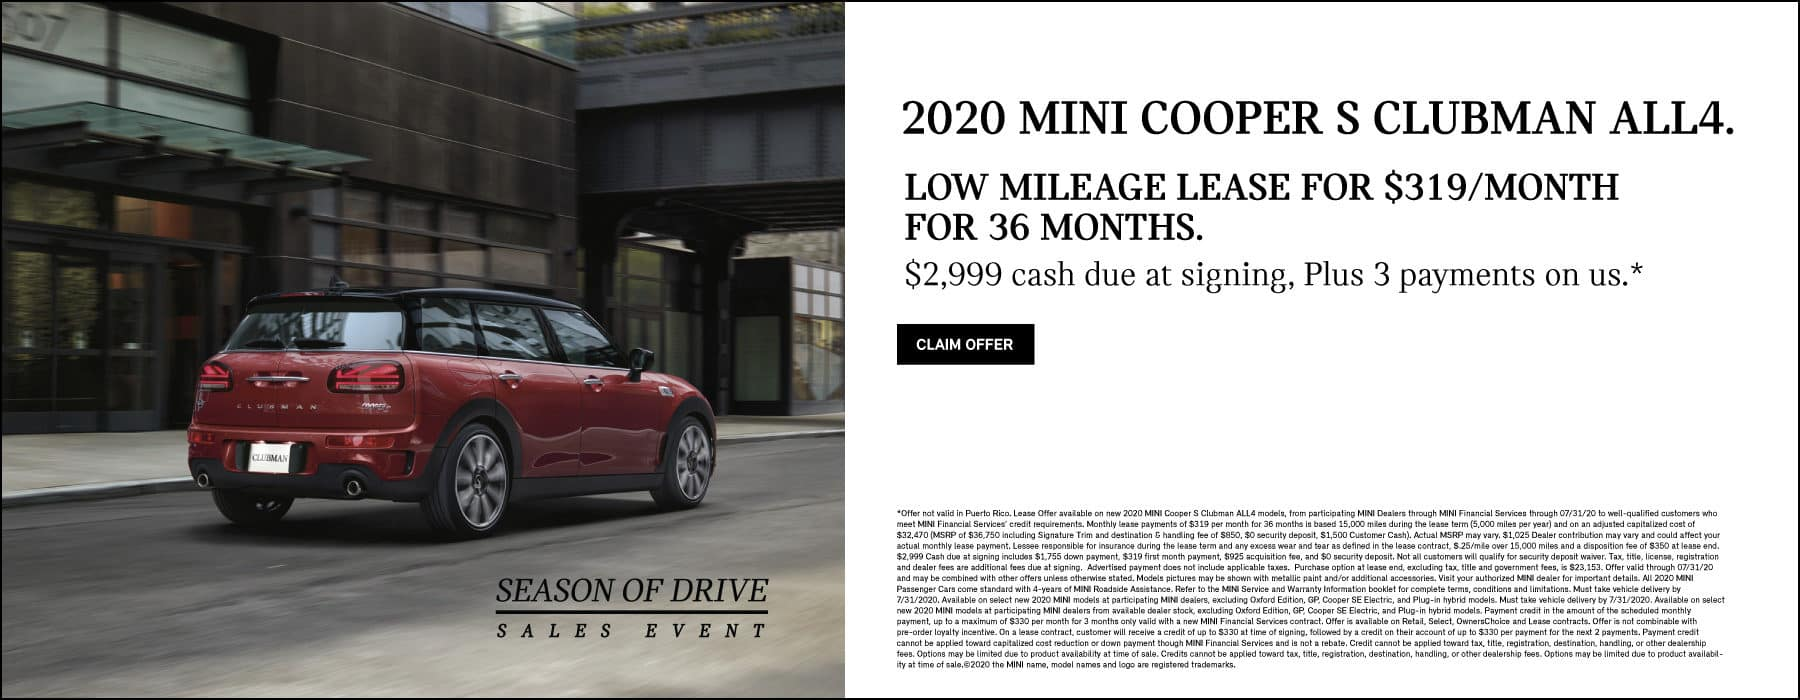 2020 mini cooper s clubman all4 low mileage lease for $319 per month for 36 months with $2999 cash due at signing plus 3 payments on us